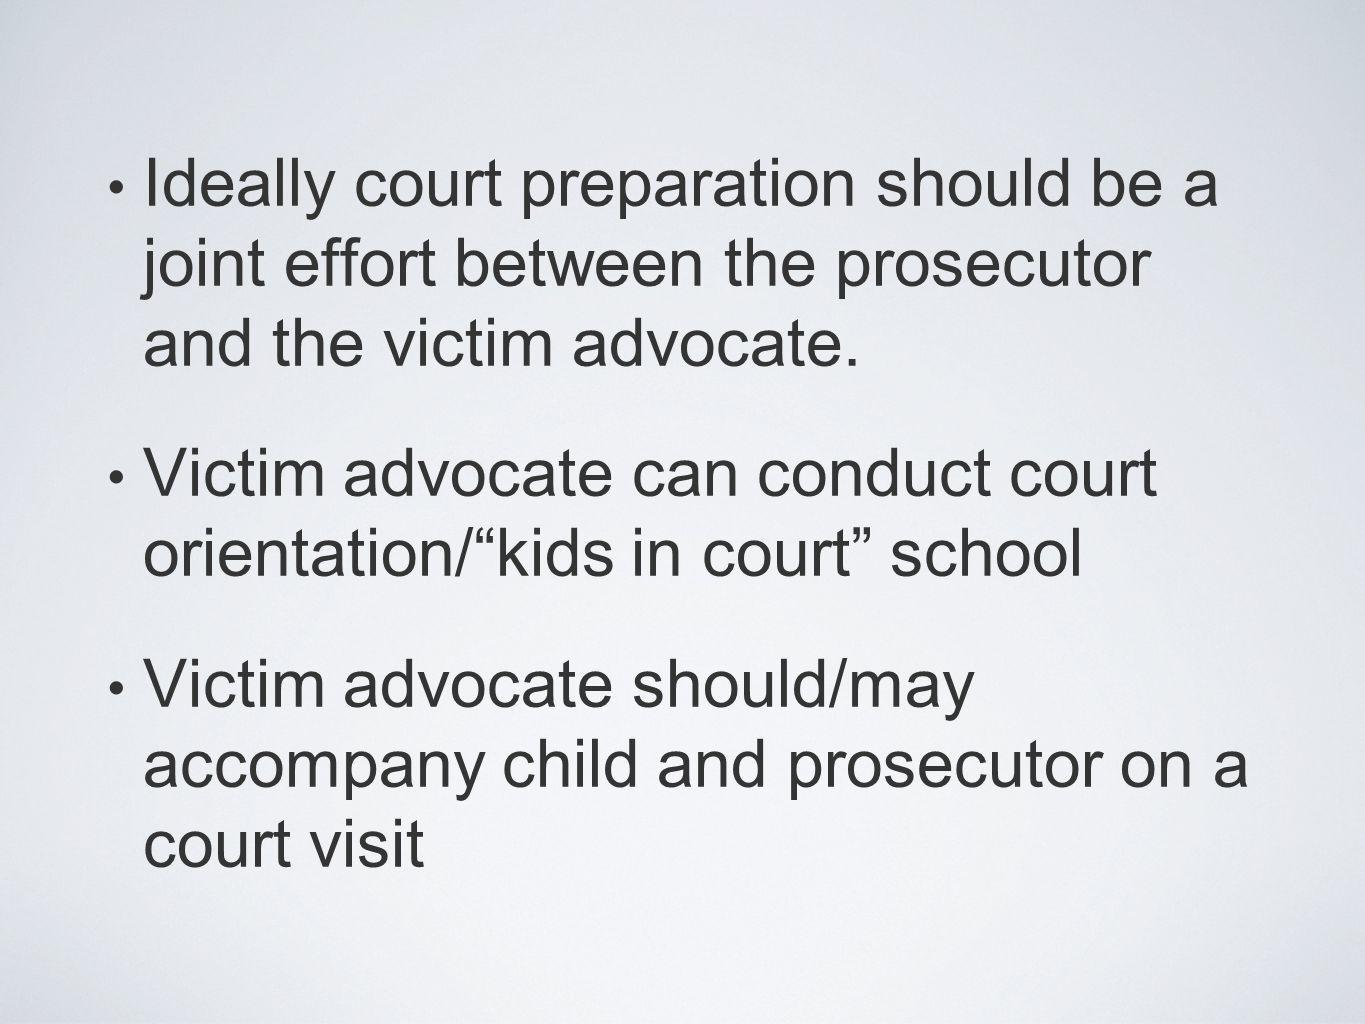 Ideally court preparation should be a joint effort between the prosecutor and the victim advocate. Victim advocate can conduct court orientation/kids